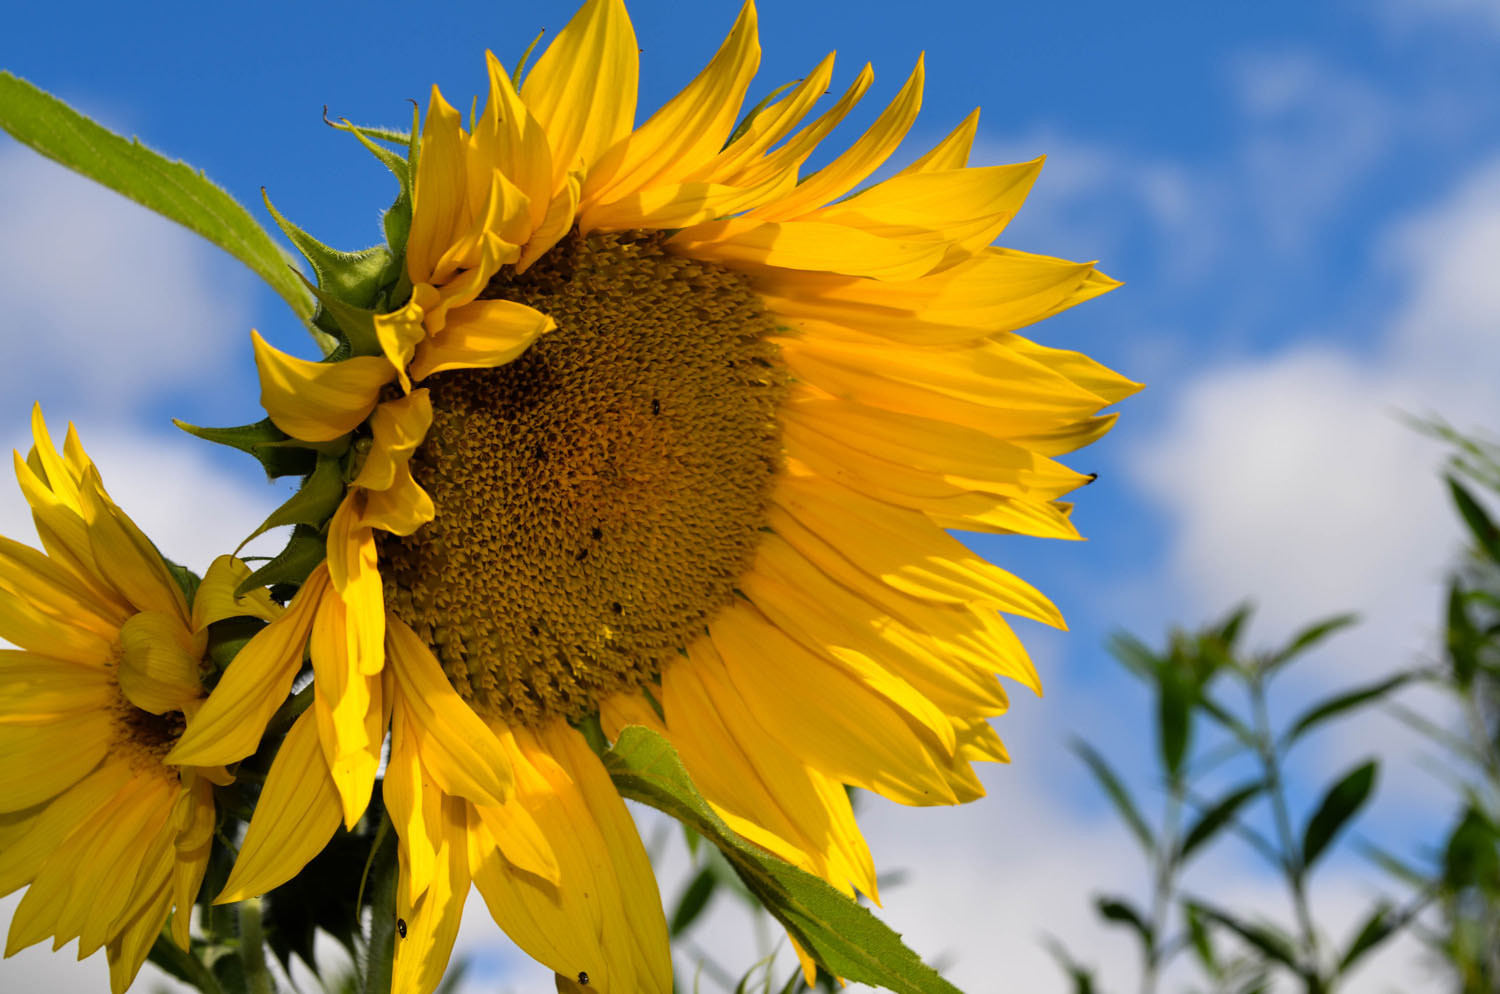 Photograph Sunflower by Morgan Stoltz on 500px